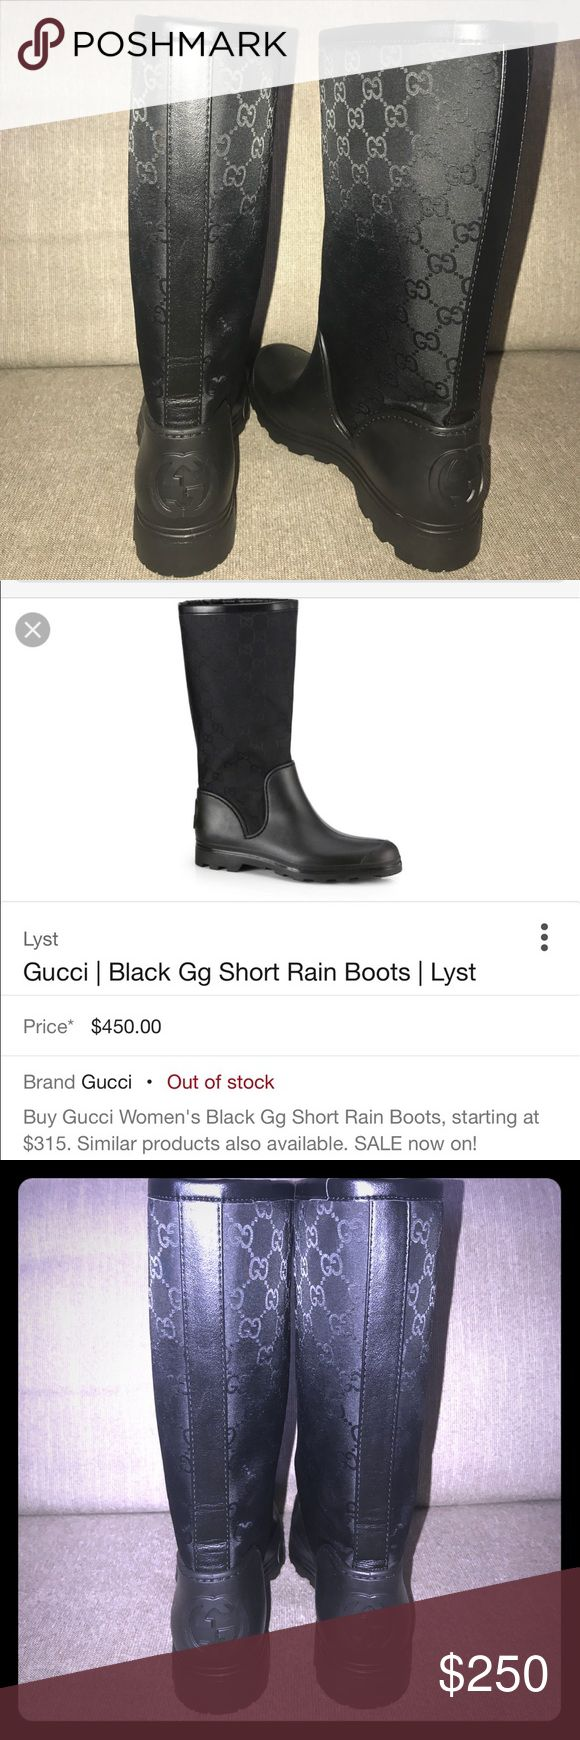 GUCCI Signature logo Black GG short rain boot 37 Brand new!! Never worn. Too small for me 🙁 💯% AUTHENTIC. ✨AMAZING NEW condition✨ (as the pics show). ❌No PP ❌Taking transactions off posh. Please don't ask. Open to trades. Currently looking f/Tory Burch Miller sandals (Sz 8, 8.5, & maybe 9). Always loving 😍 LV, Chanel, & Valentino flats/Chanel pearl necklaces/Goyard purses. Also, open to reasonable offers 😃. Gucci Shoes Winter & Rain Boots